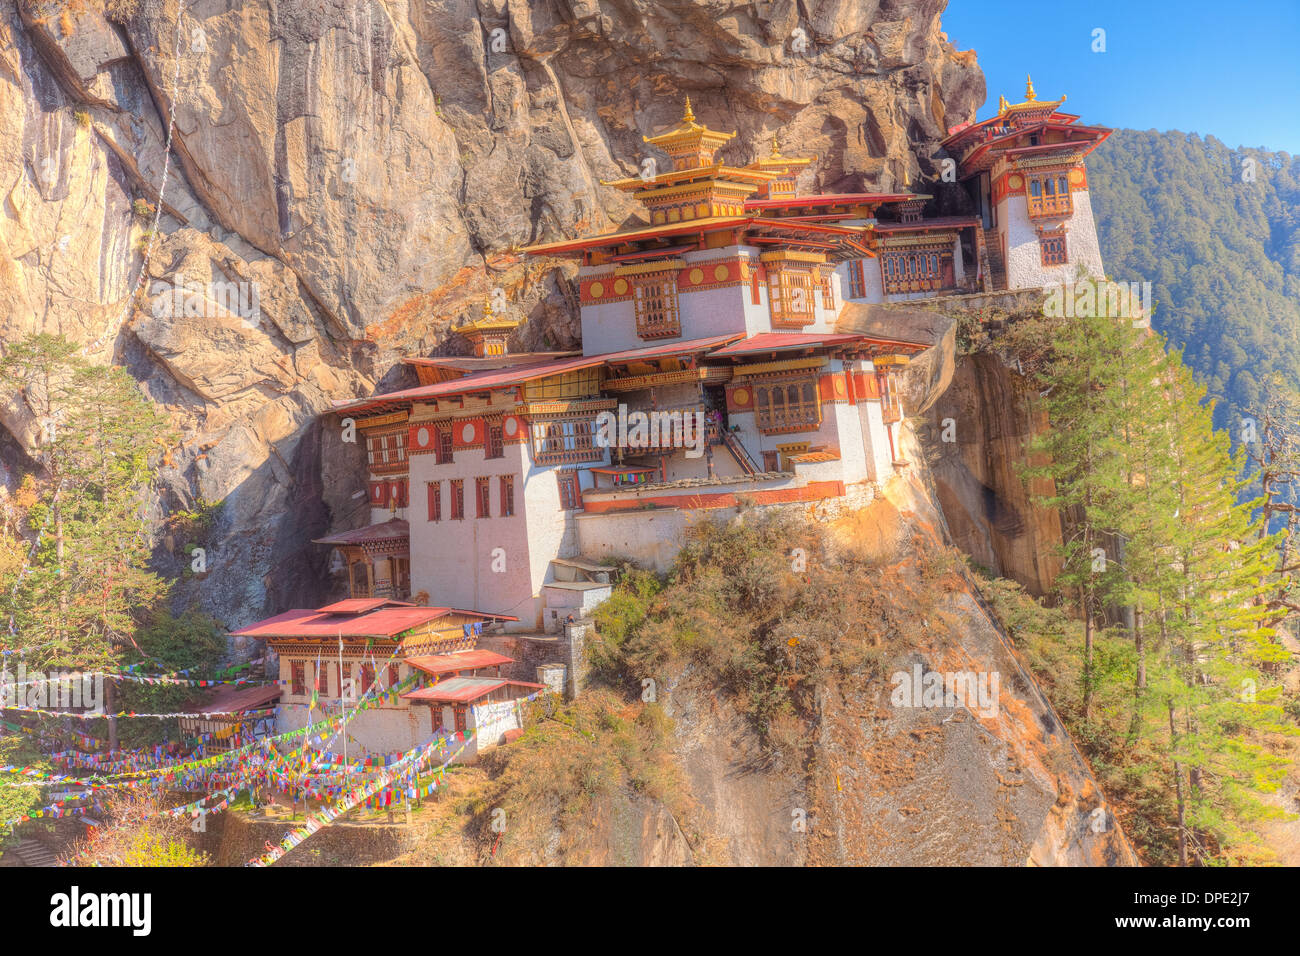 The Tigers Nest Monastery. Bhutan, Himalaya Mountains, Paro Valley. Taktshang Goemba. Perched 3,000 feet above valley below - Stock Image